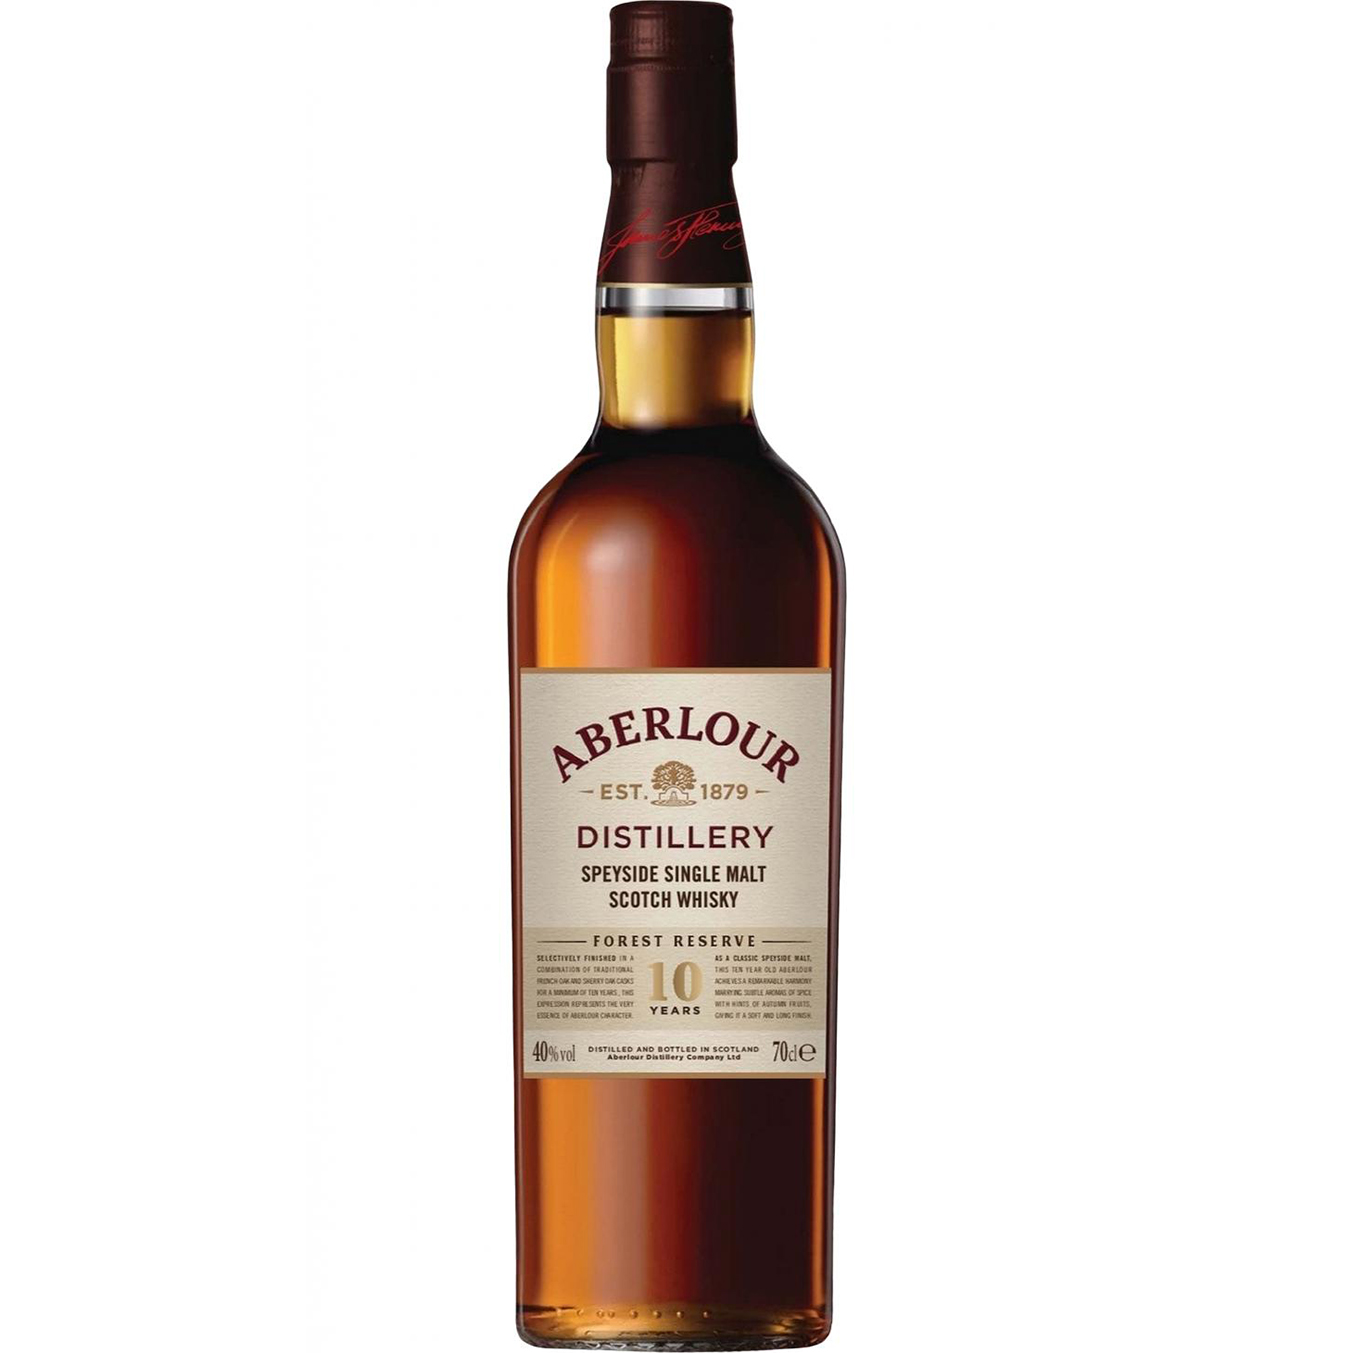 Aberlour 10 years – Forest Reserve